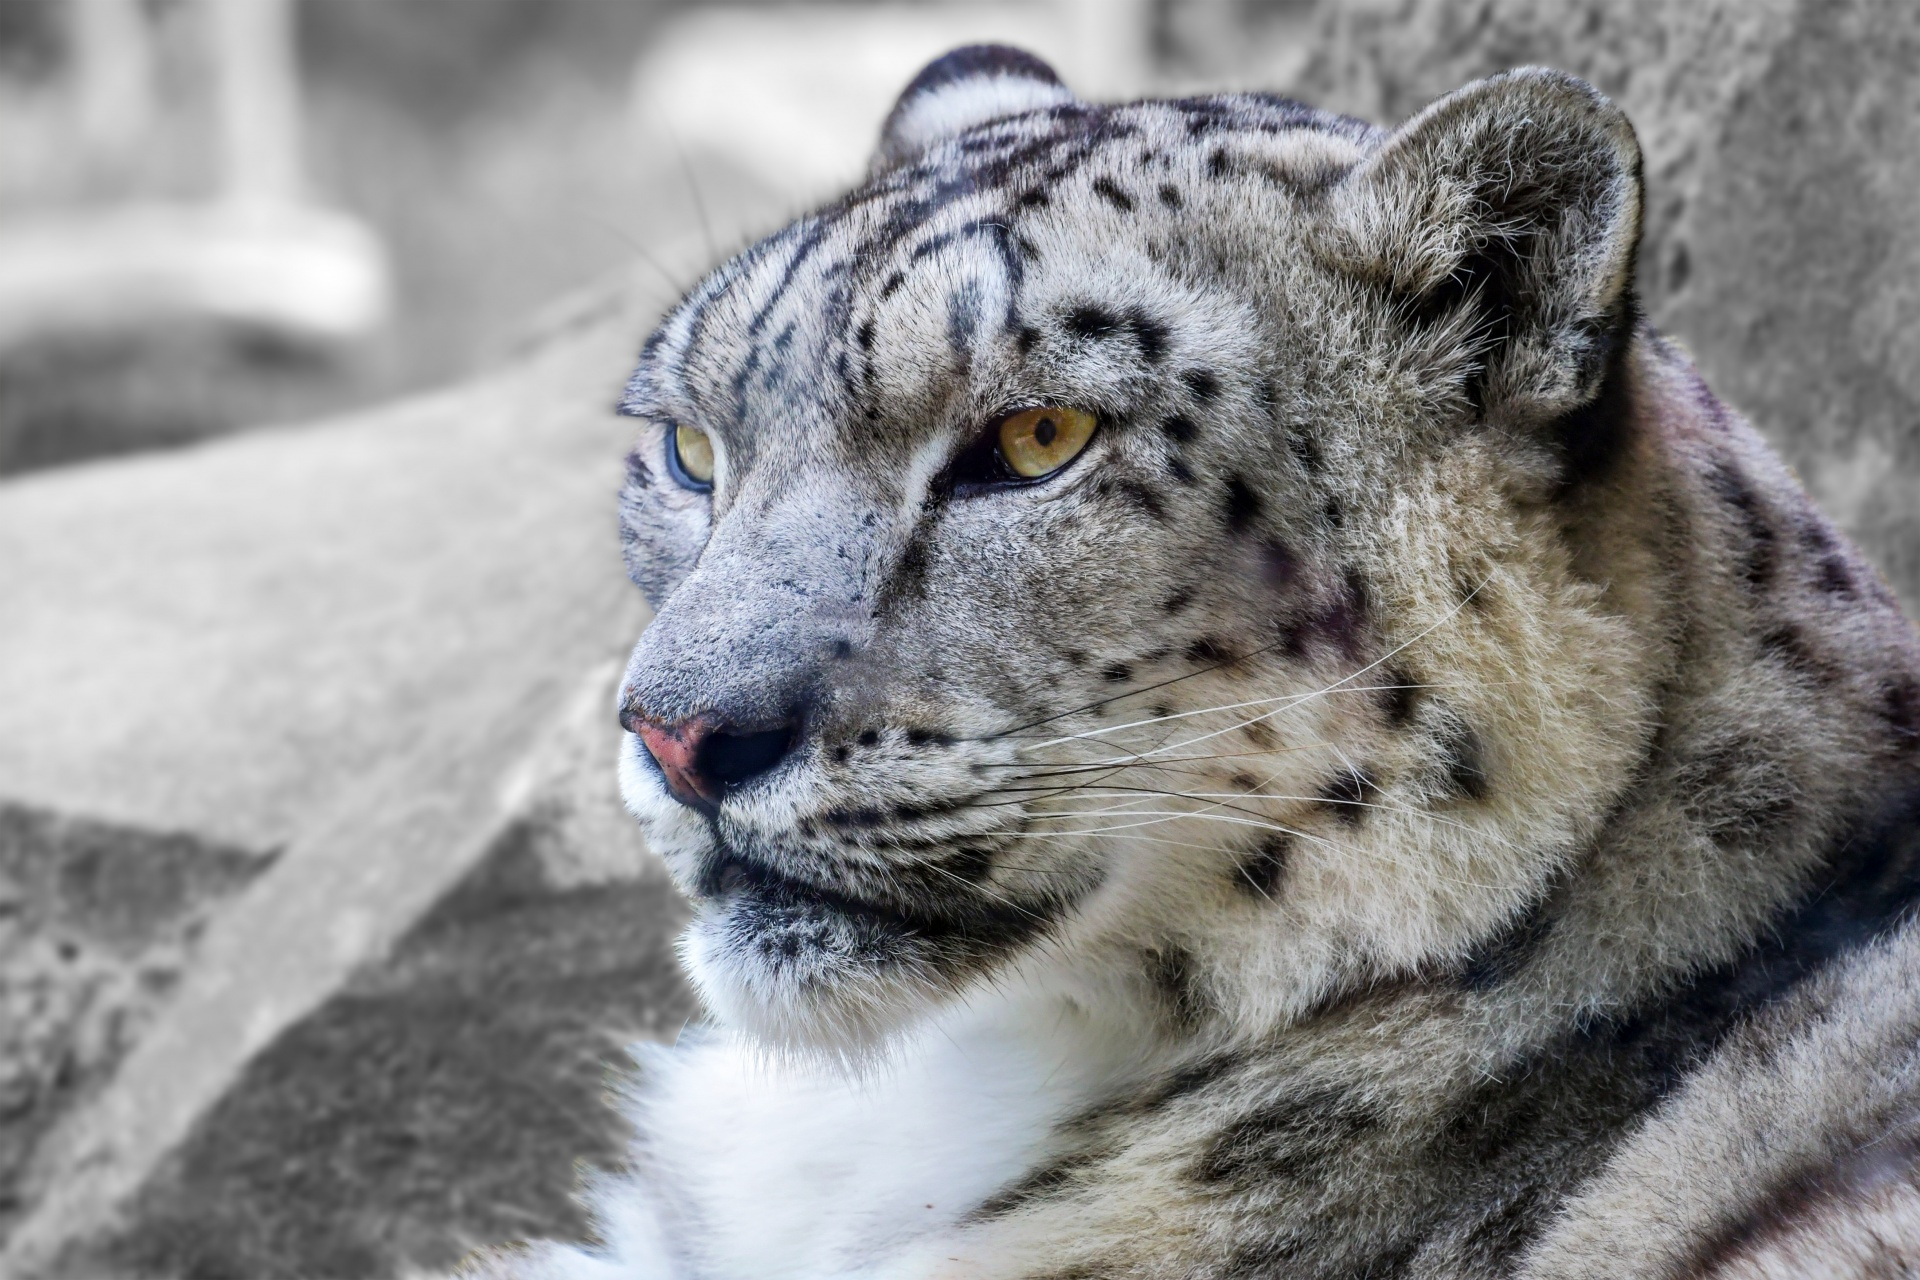 INDIA PLANS TO COUNT ITS SNOW LEOPARD POPULATION